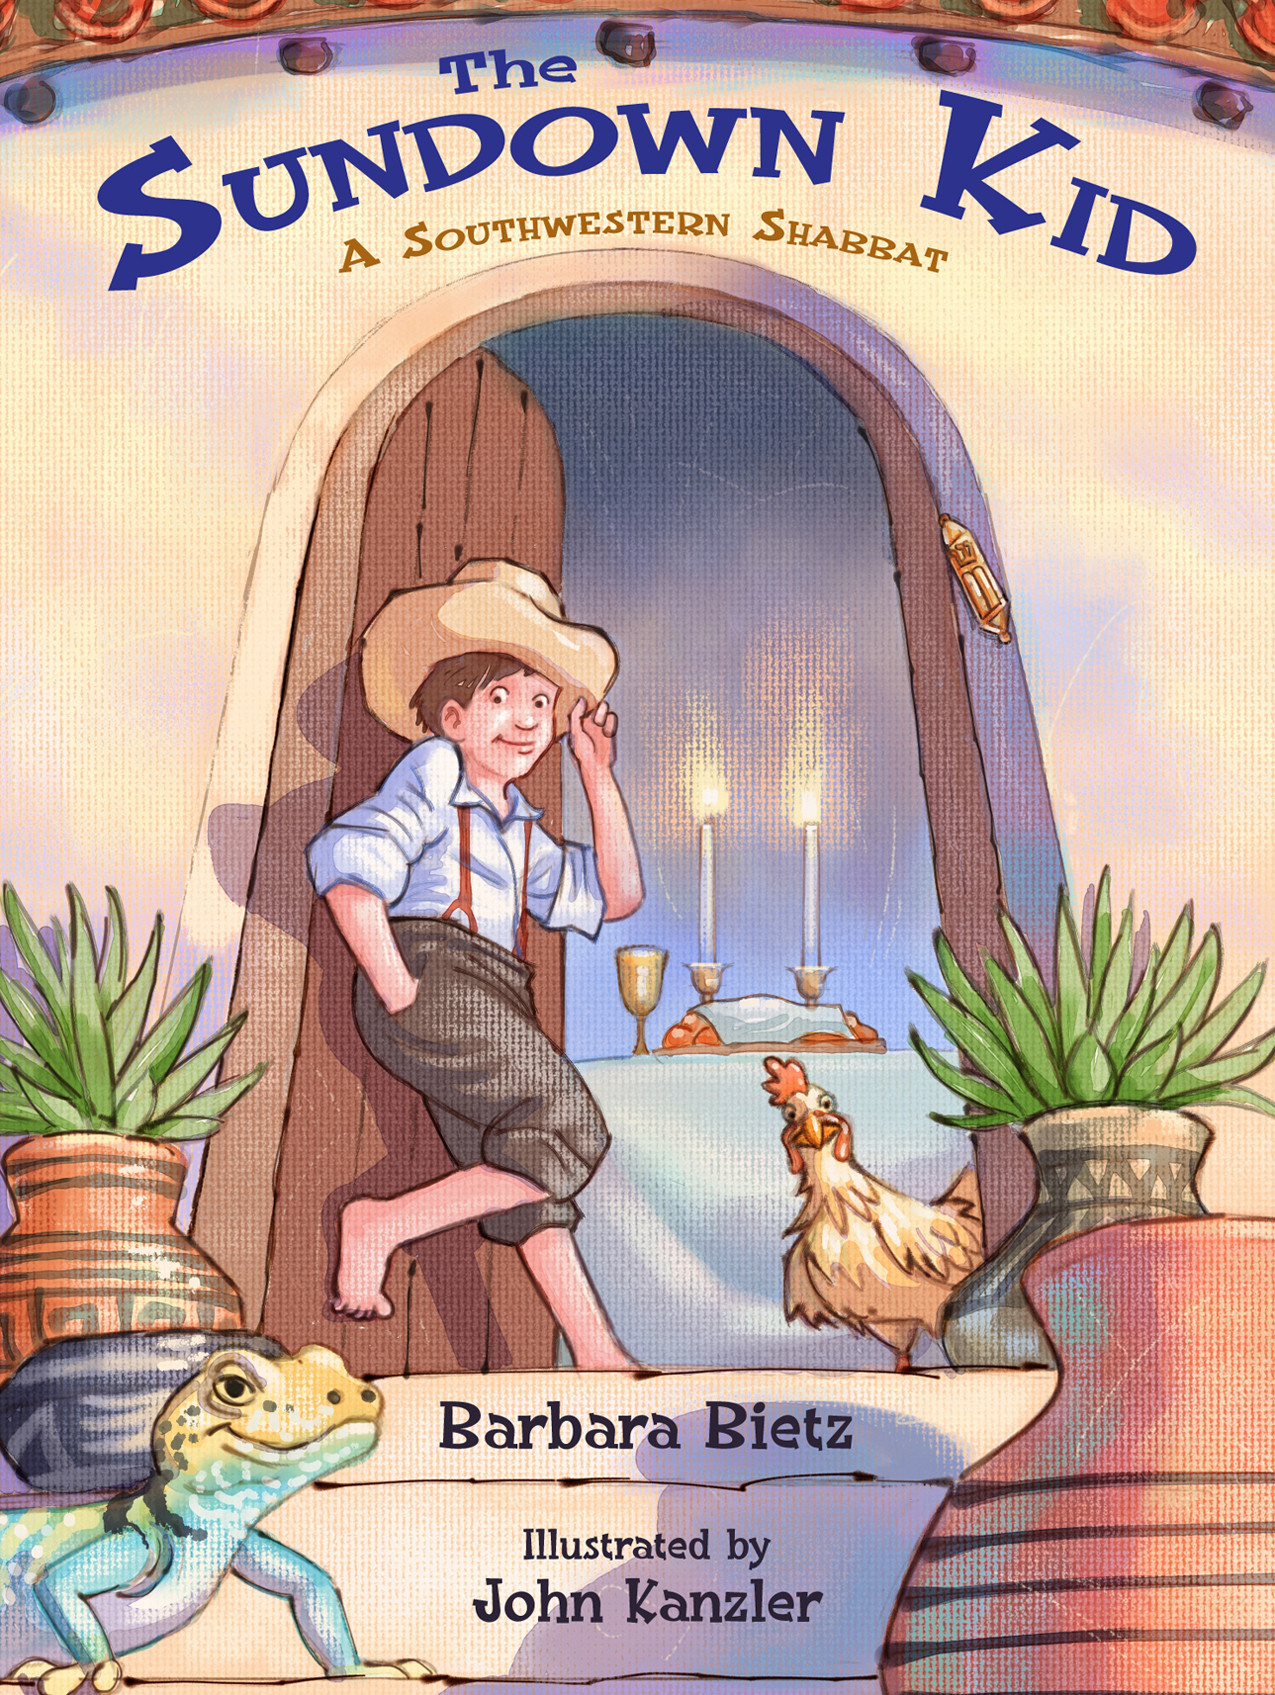 The Sundown Kid: A Southwestern Shabbat